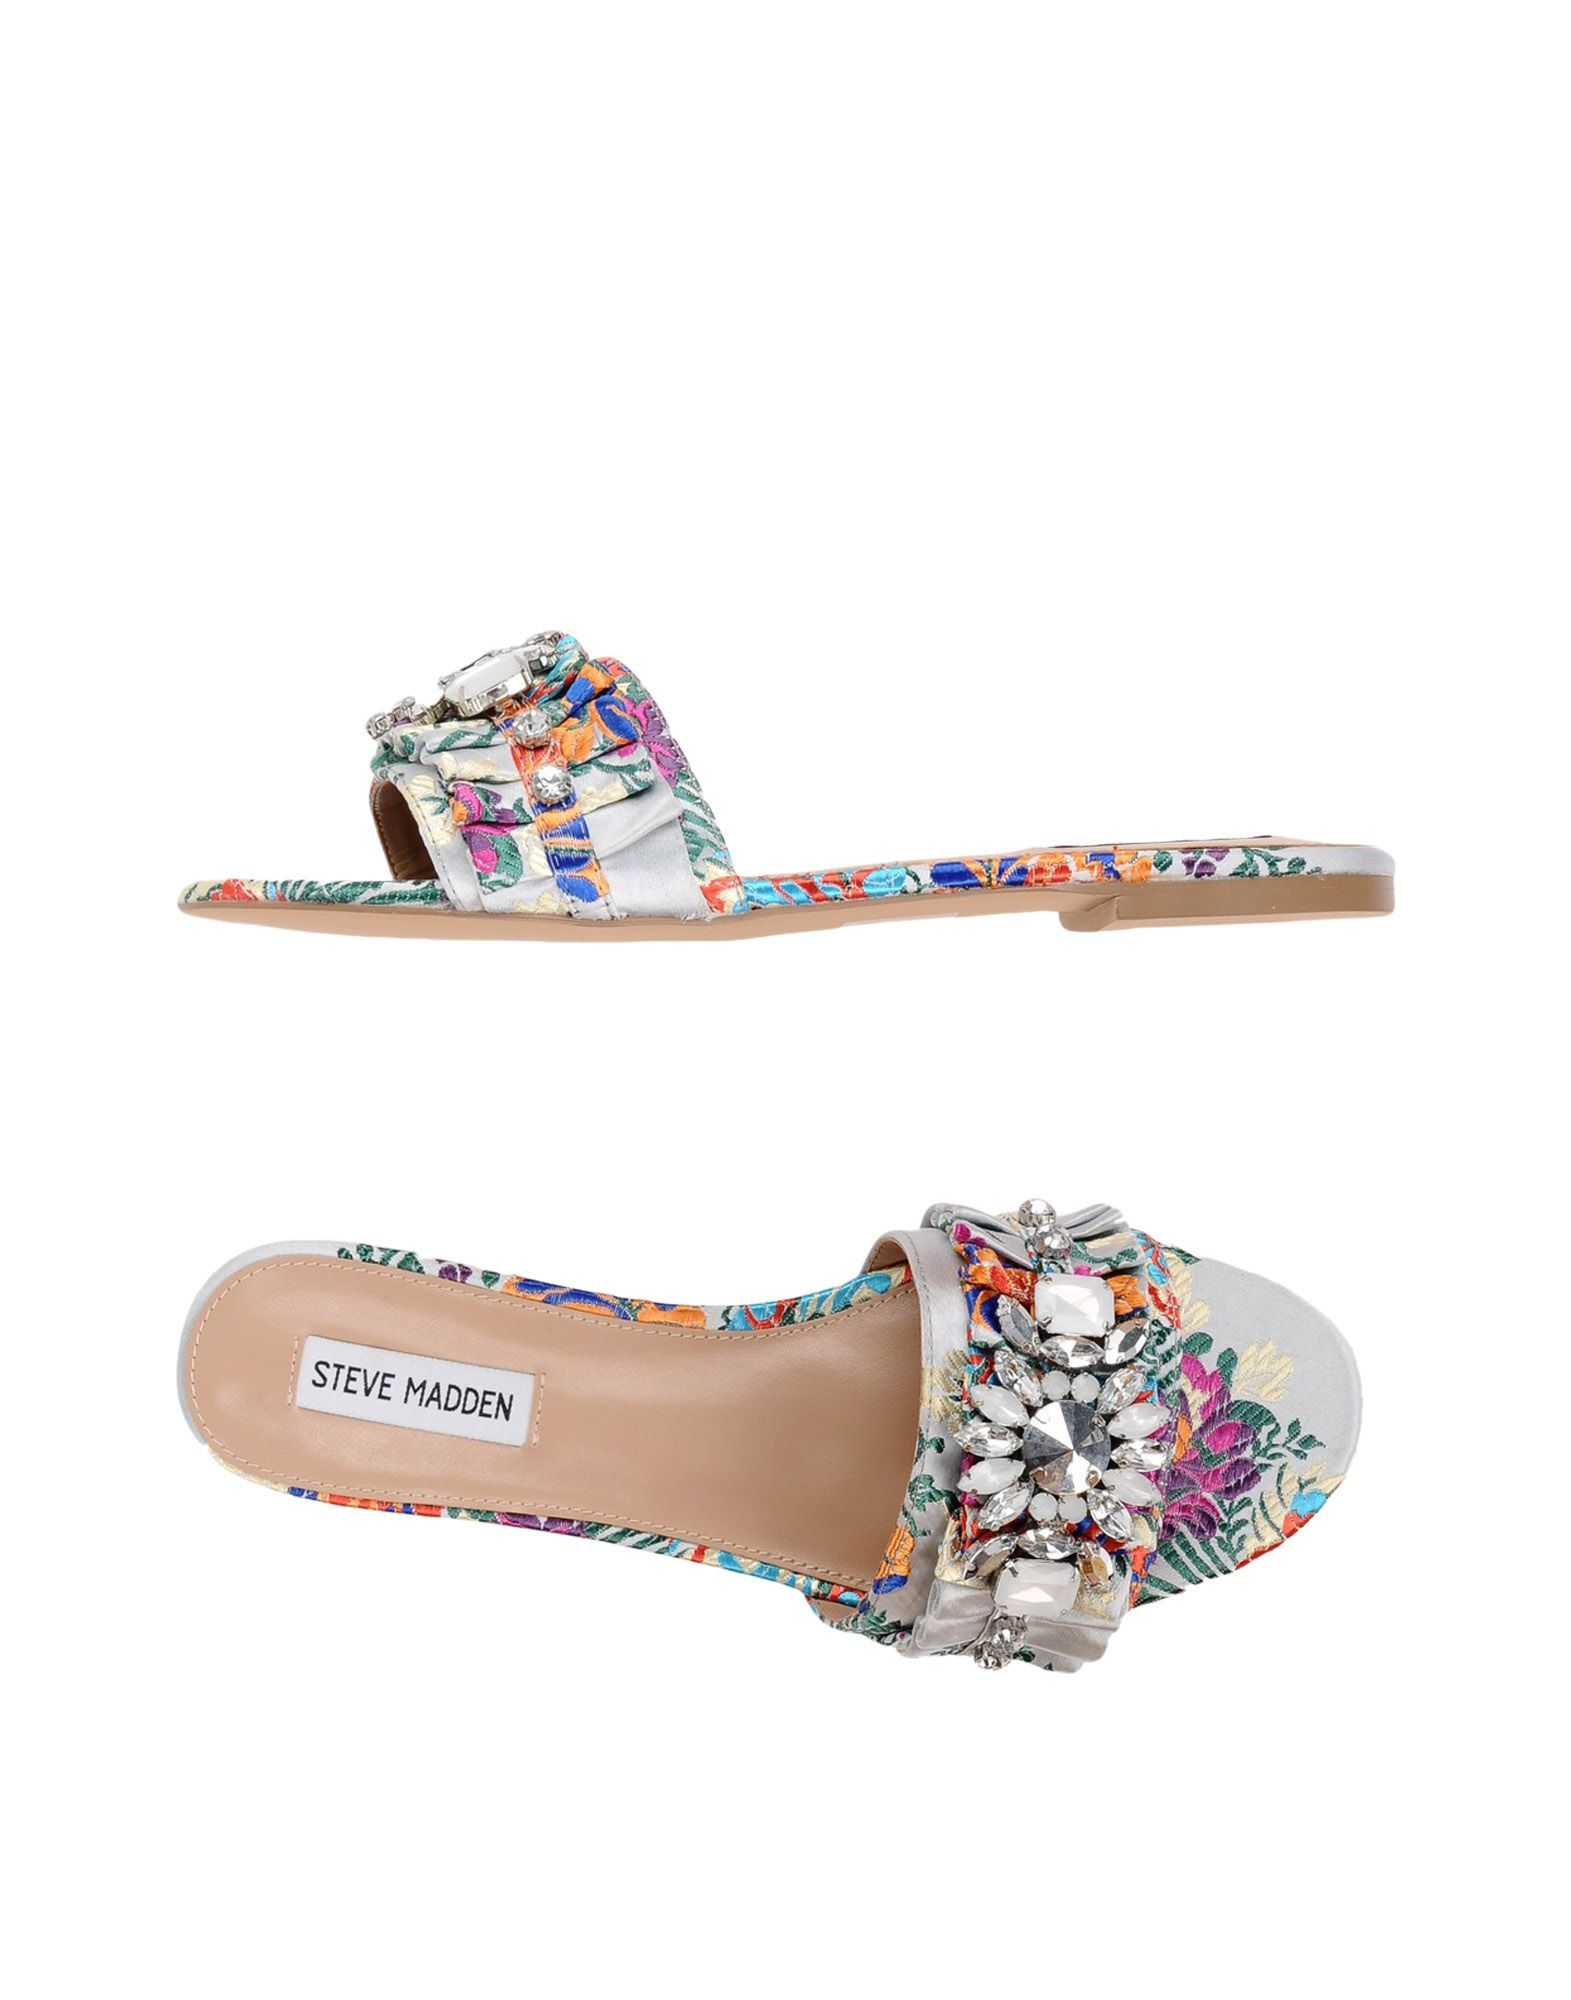 0ff56317d91 Fun floral rhinestone sandals. Could go with a variety of different ...